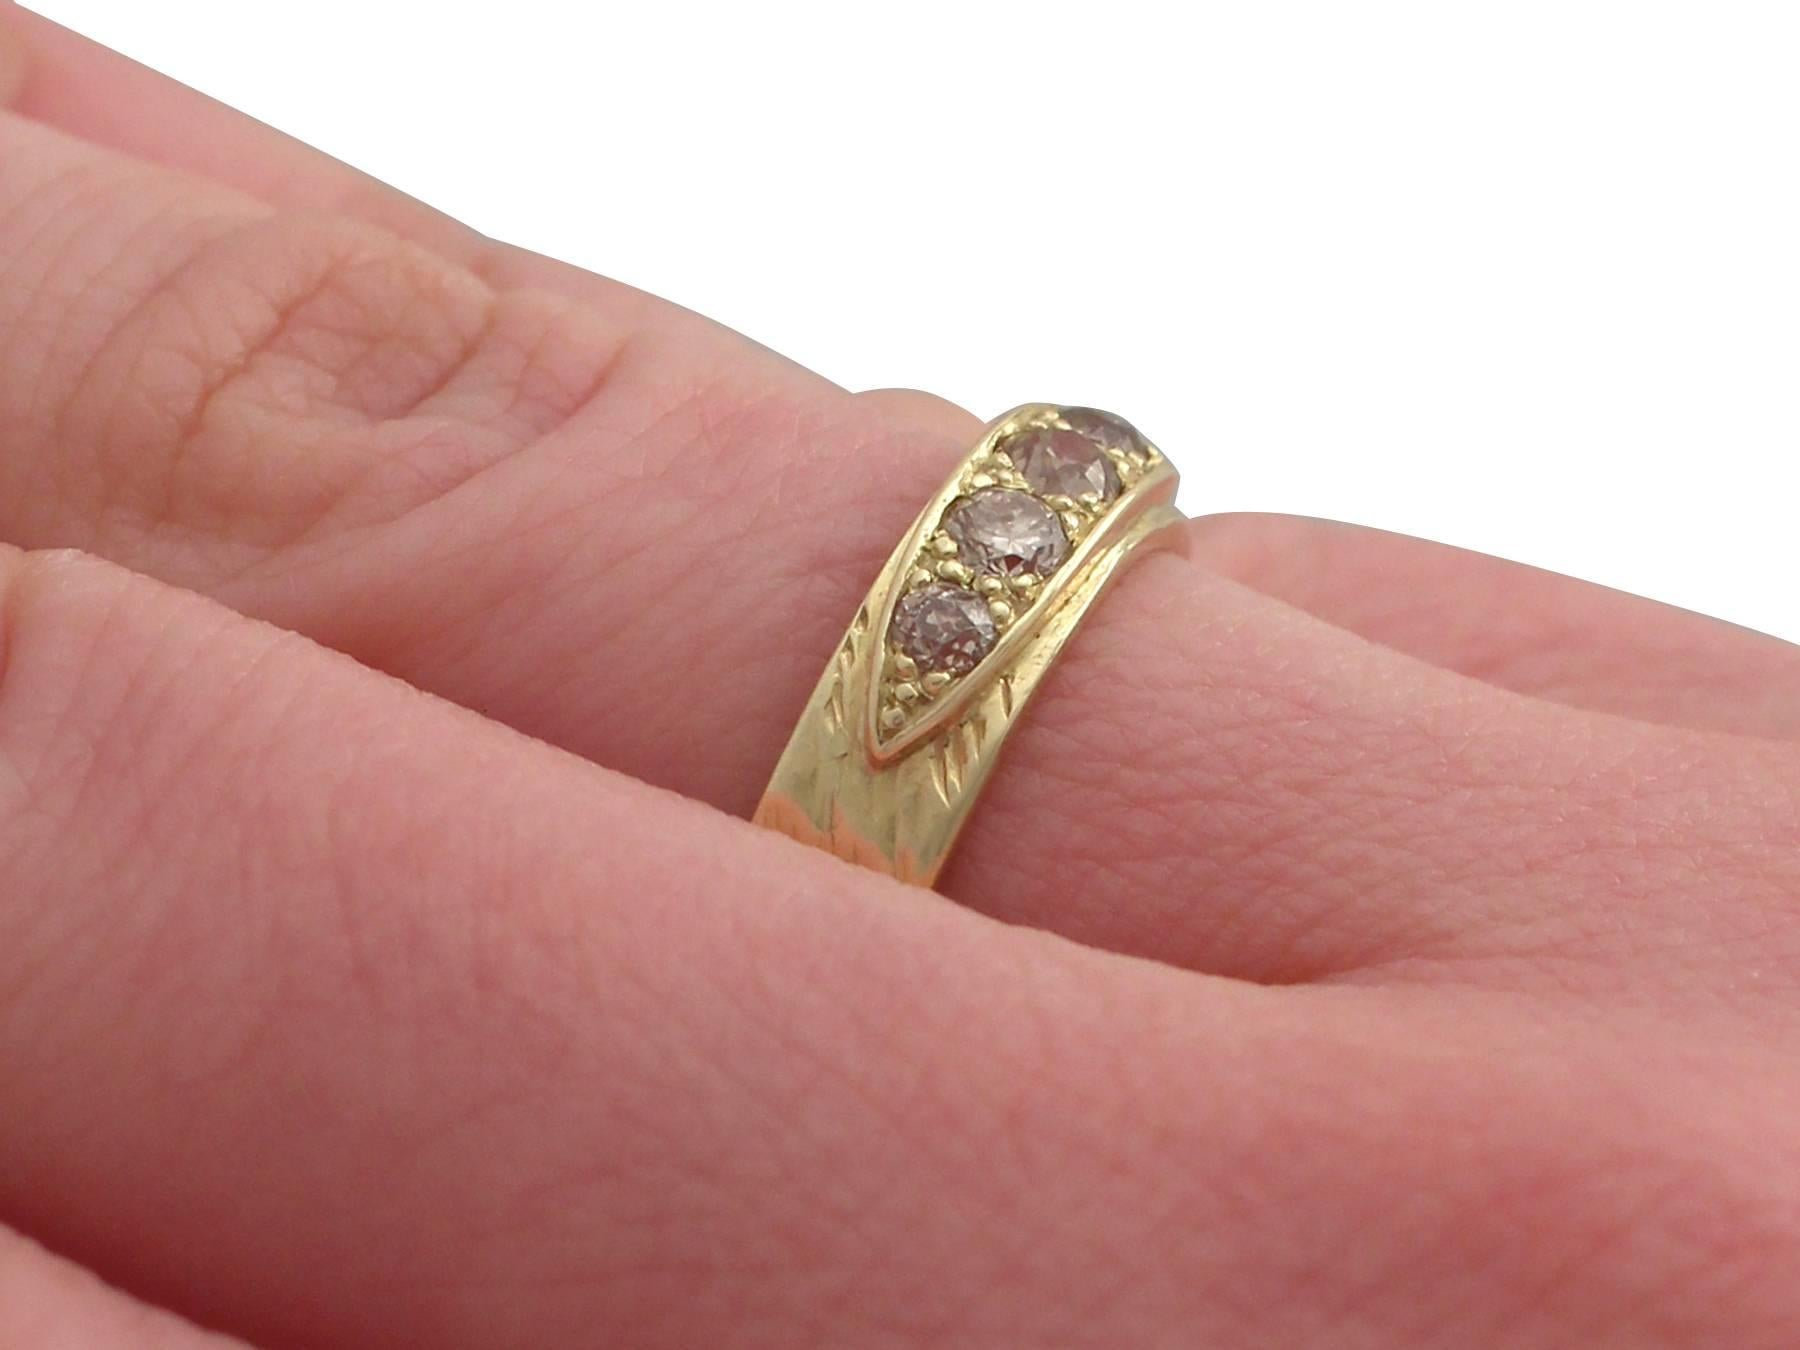 1970s Antique Diamond and Yellow Gold Ring For Sale at 1stdibs